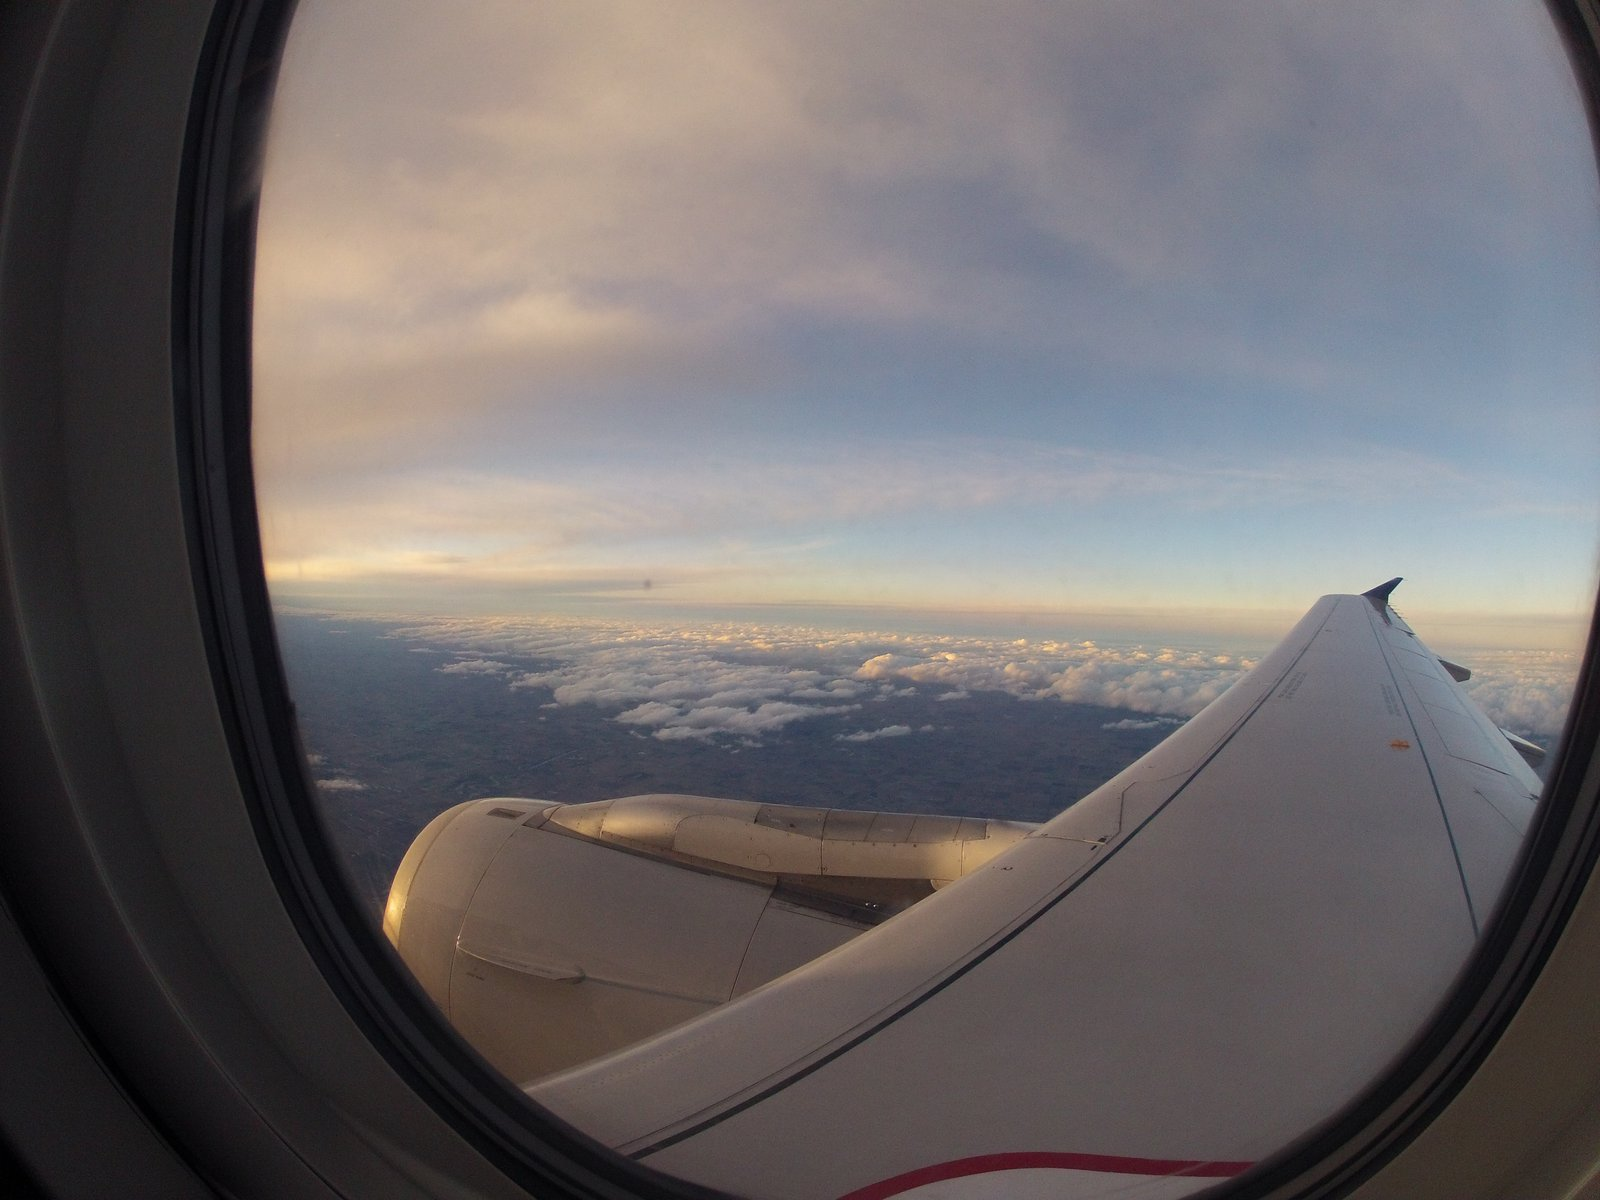 On my with to Colorado with the GoPro Hero 2